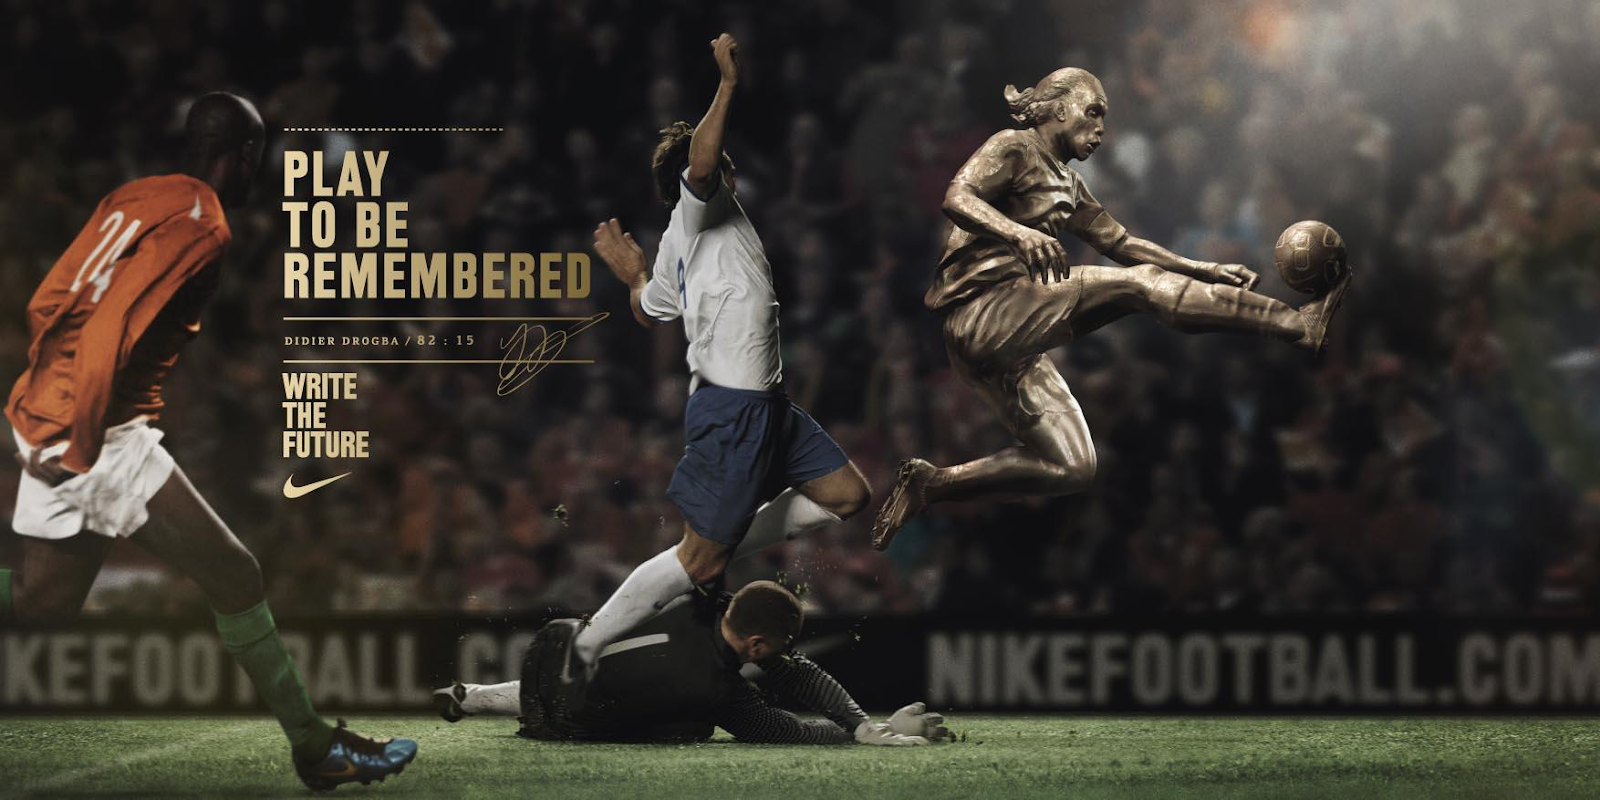 """Play to be remembered"" football ad"